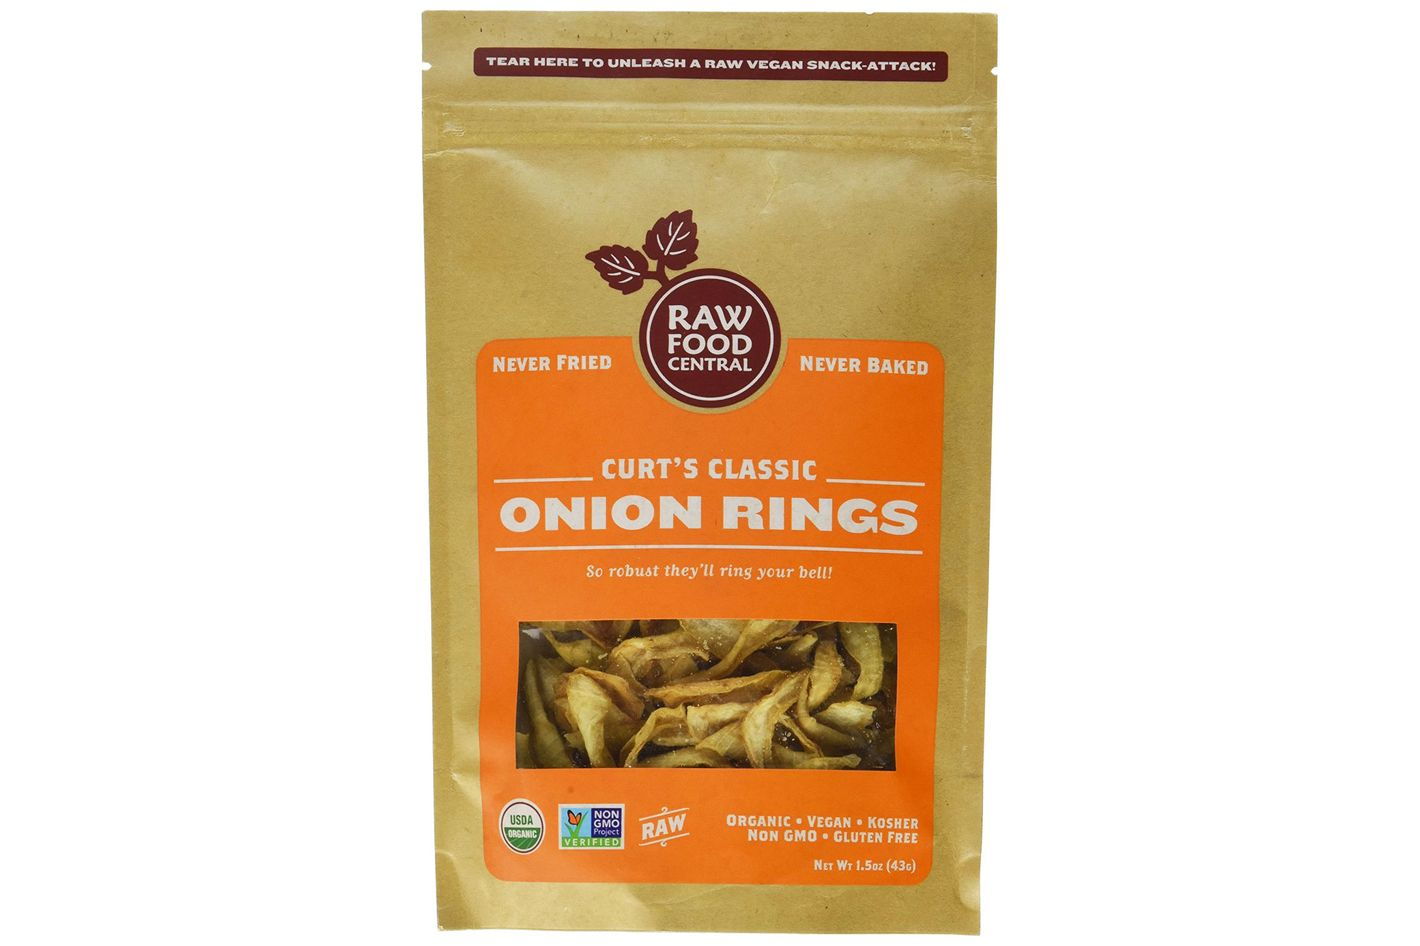 Raw Food Central's Onion Rings